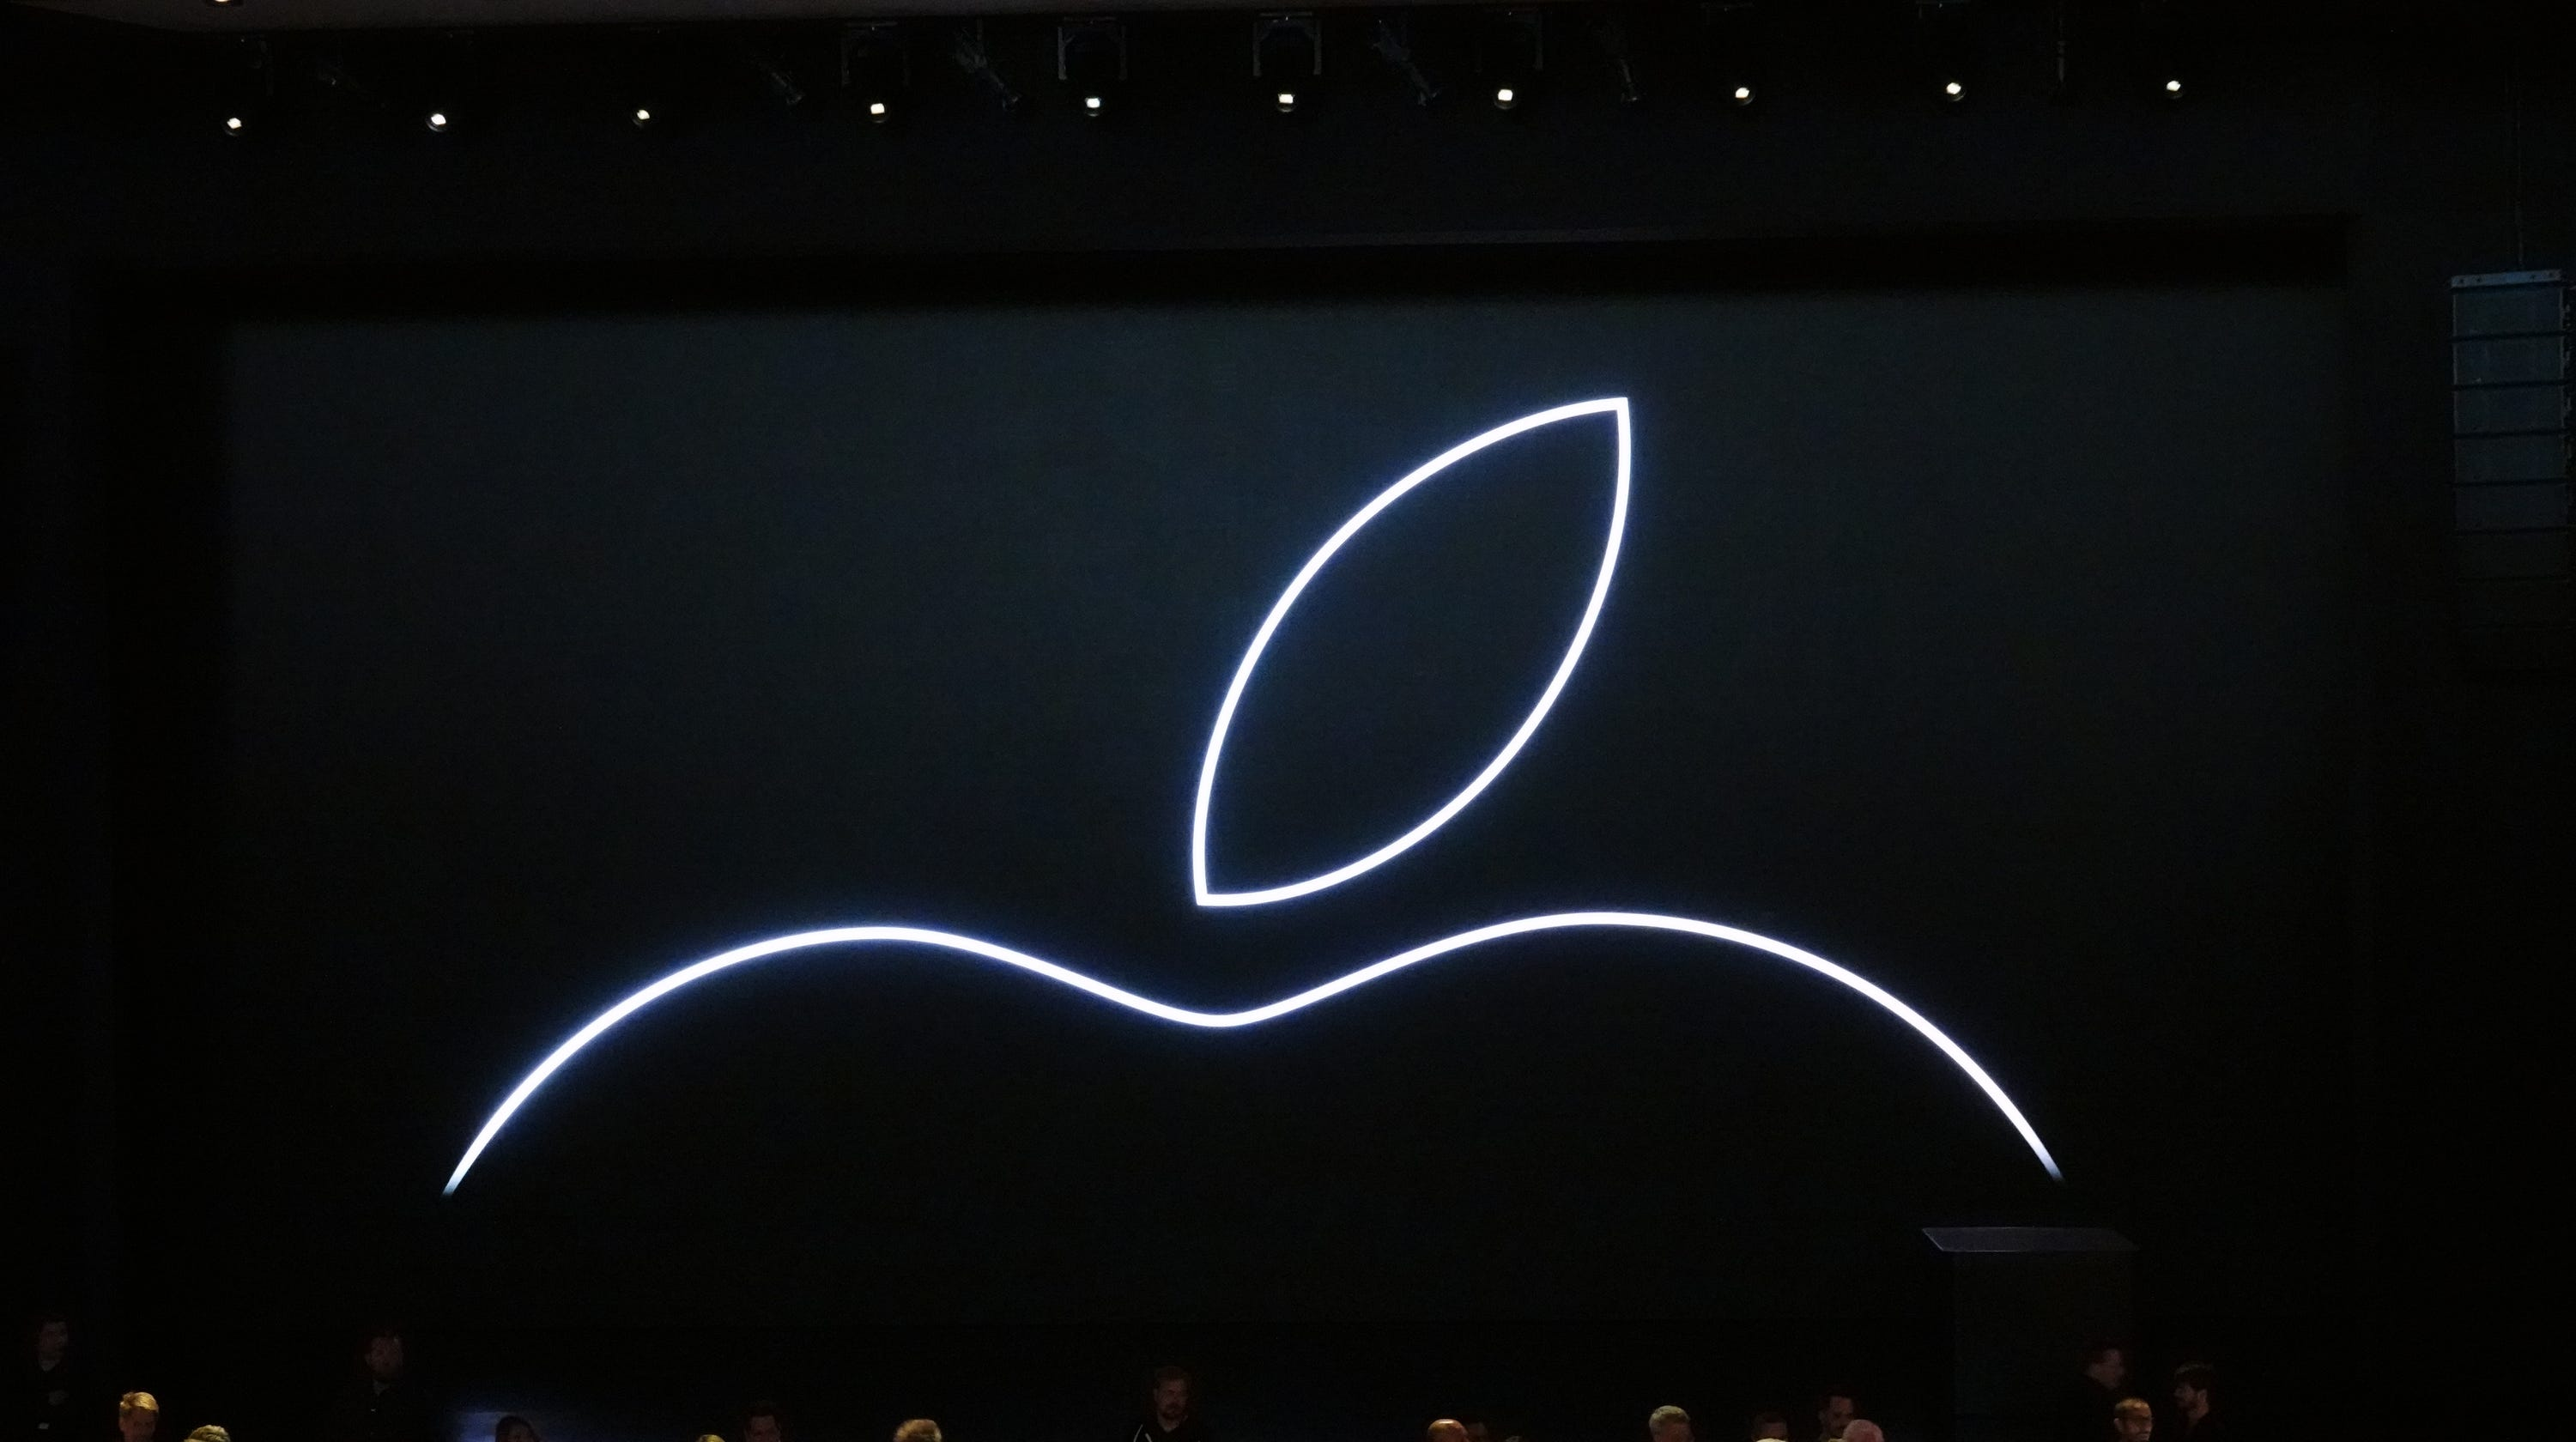 Apple's next iPhone event expected to be virtual. Samsung's is Aug. 5